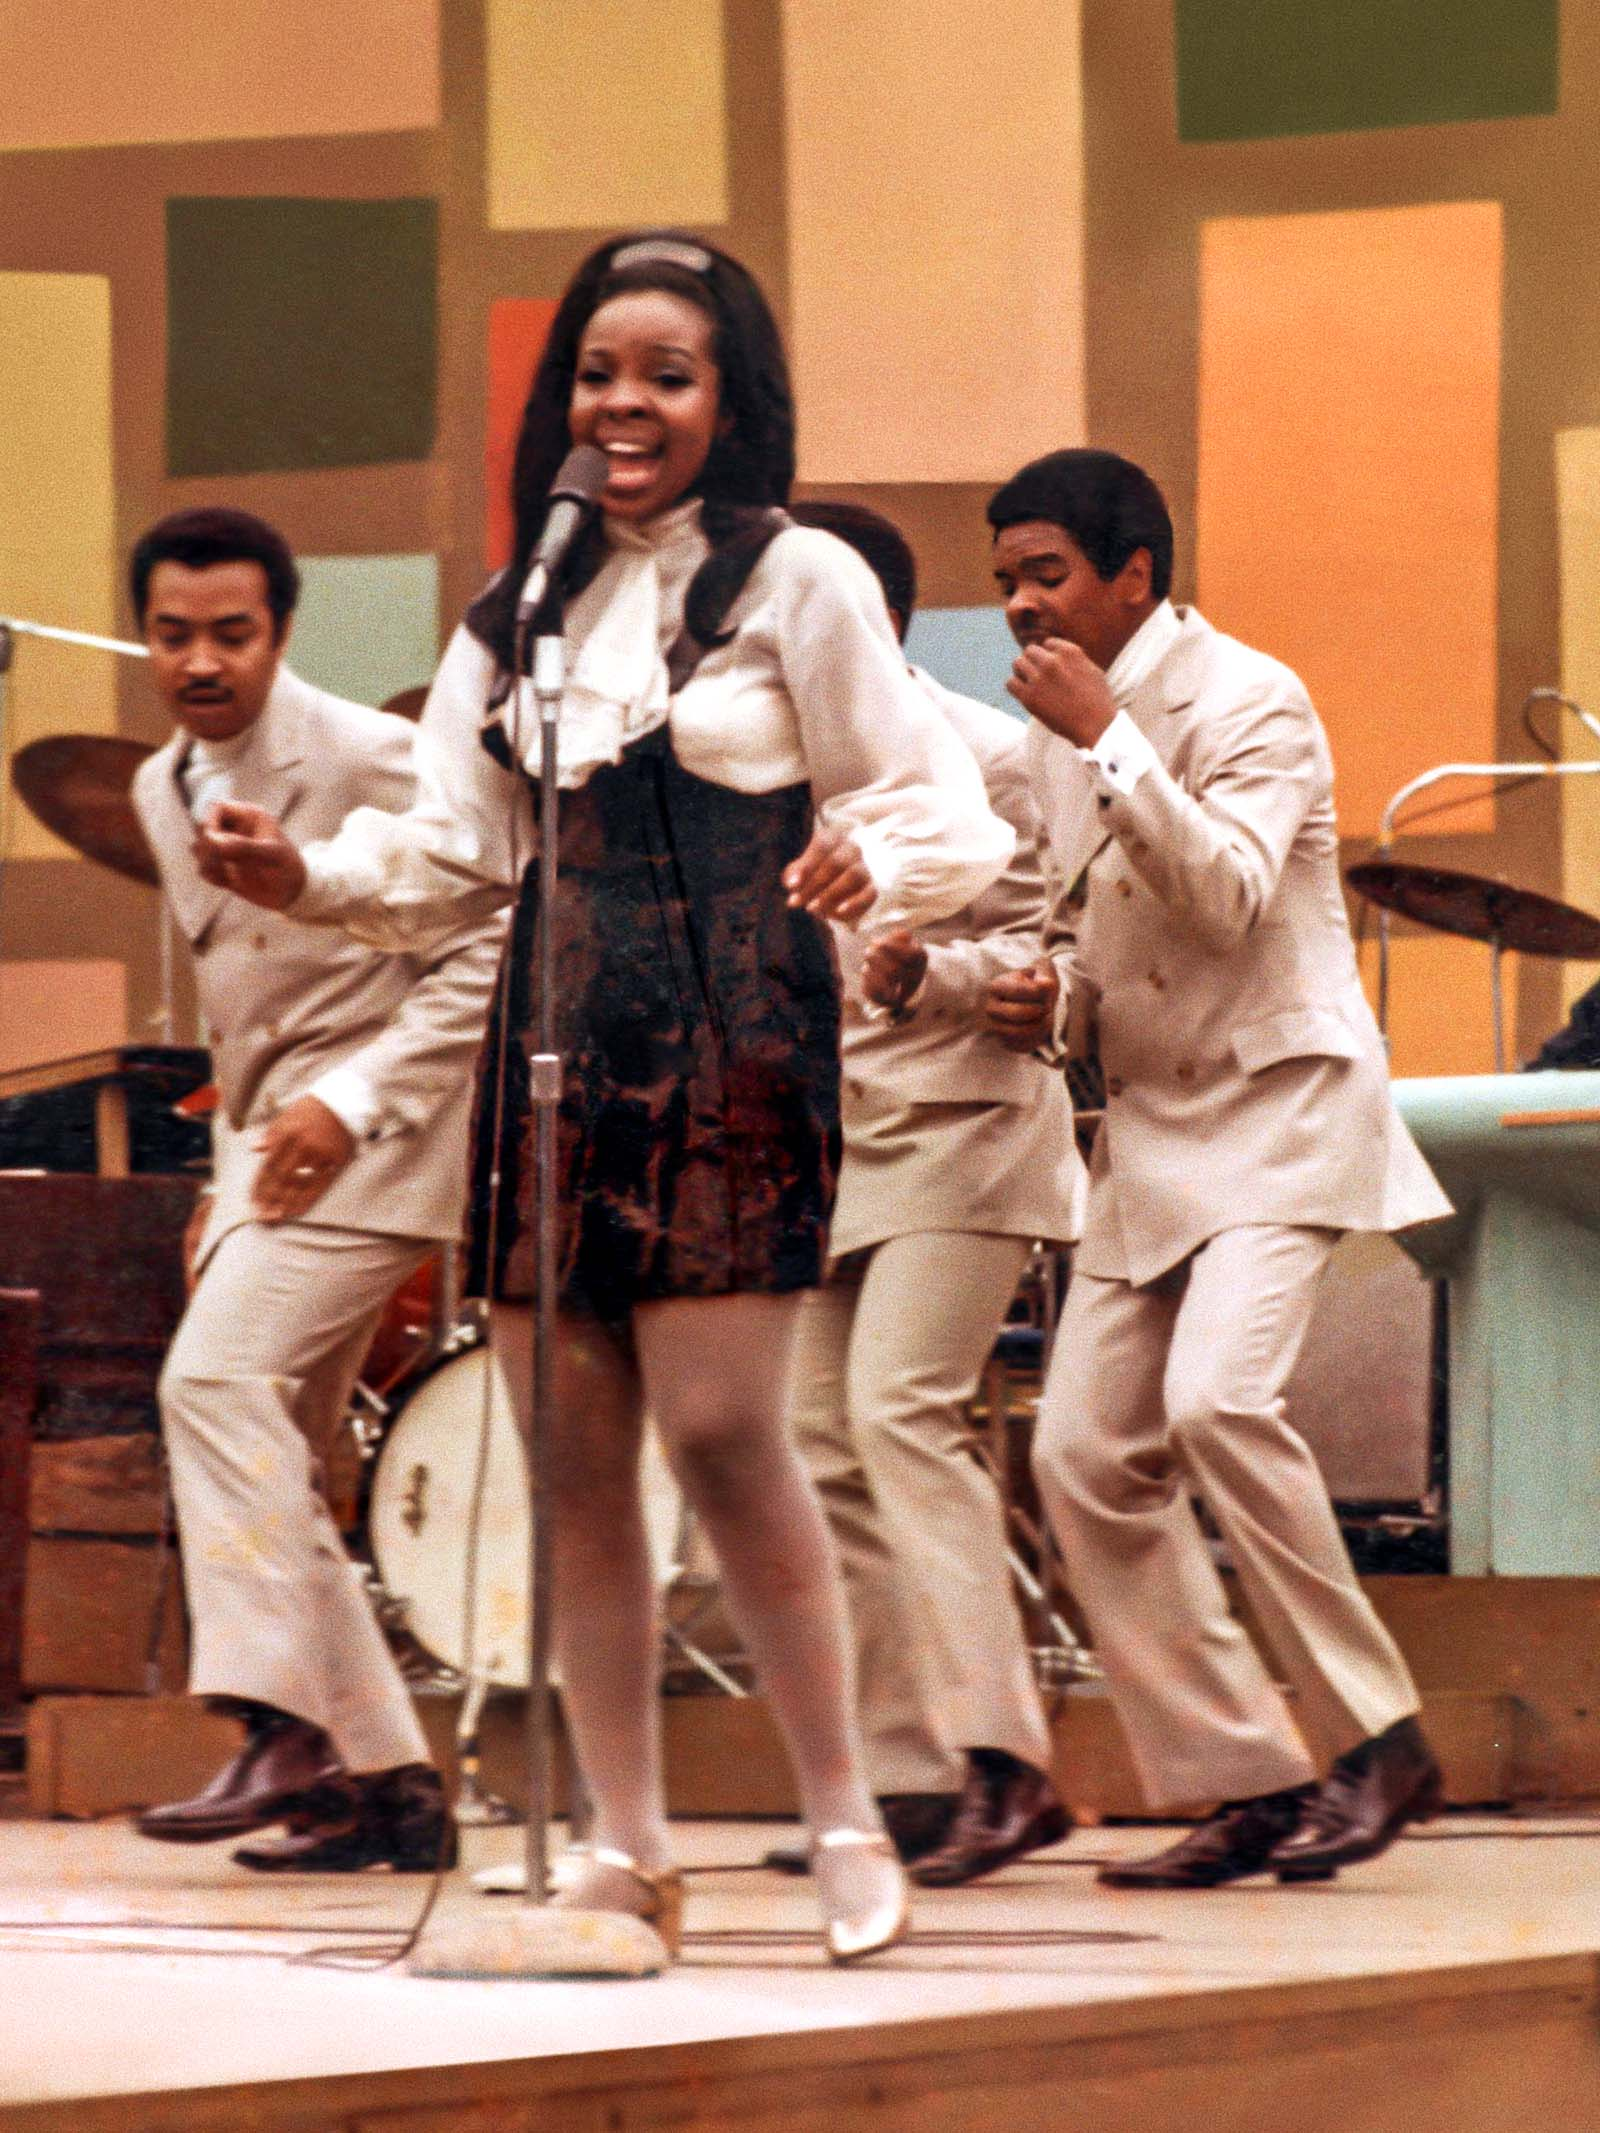 Gladys Knight and The Pips perform at the 1969 Harlem Cultural Festival. Image © 20th Century Studios